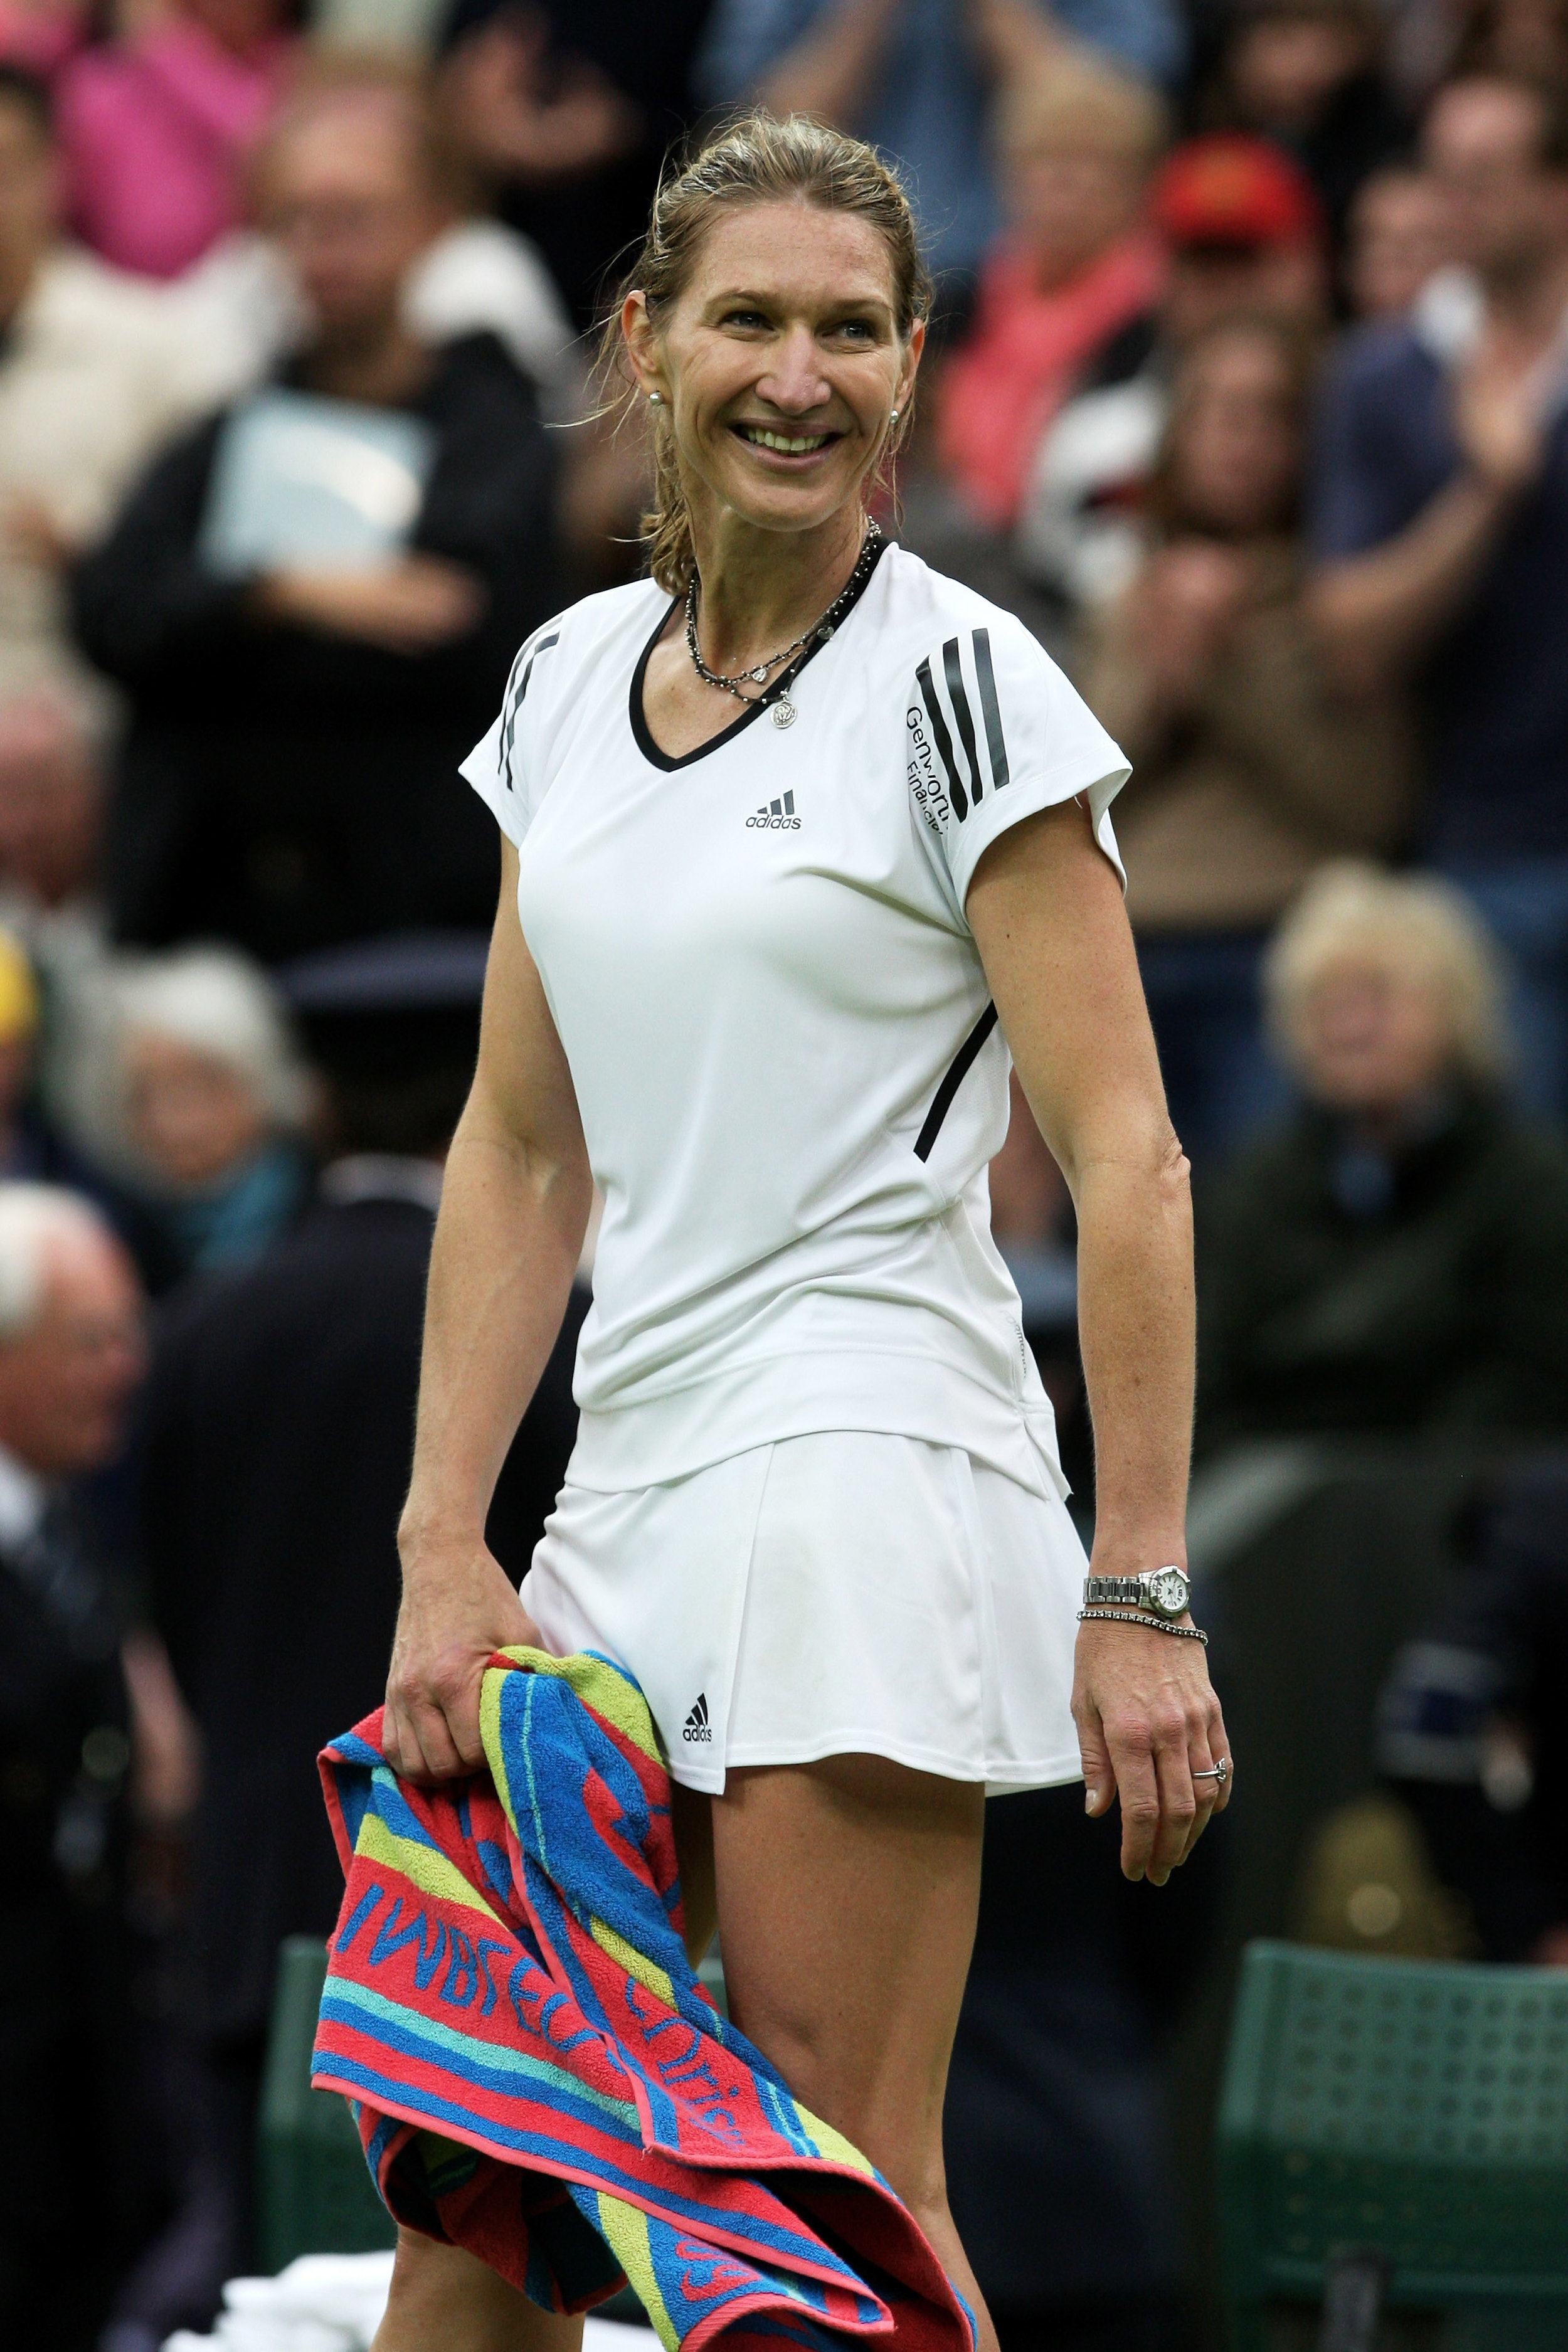 Steffi Graf - Top ranked tennis player, and the first and only tennis player to win the Golden Slam